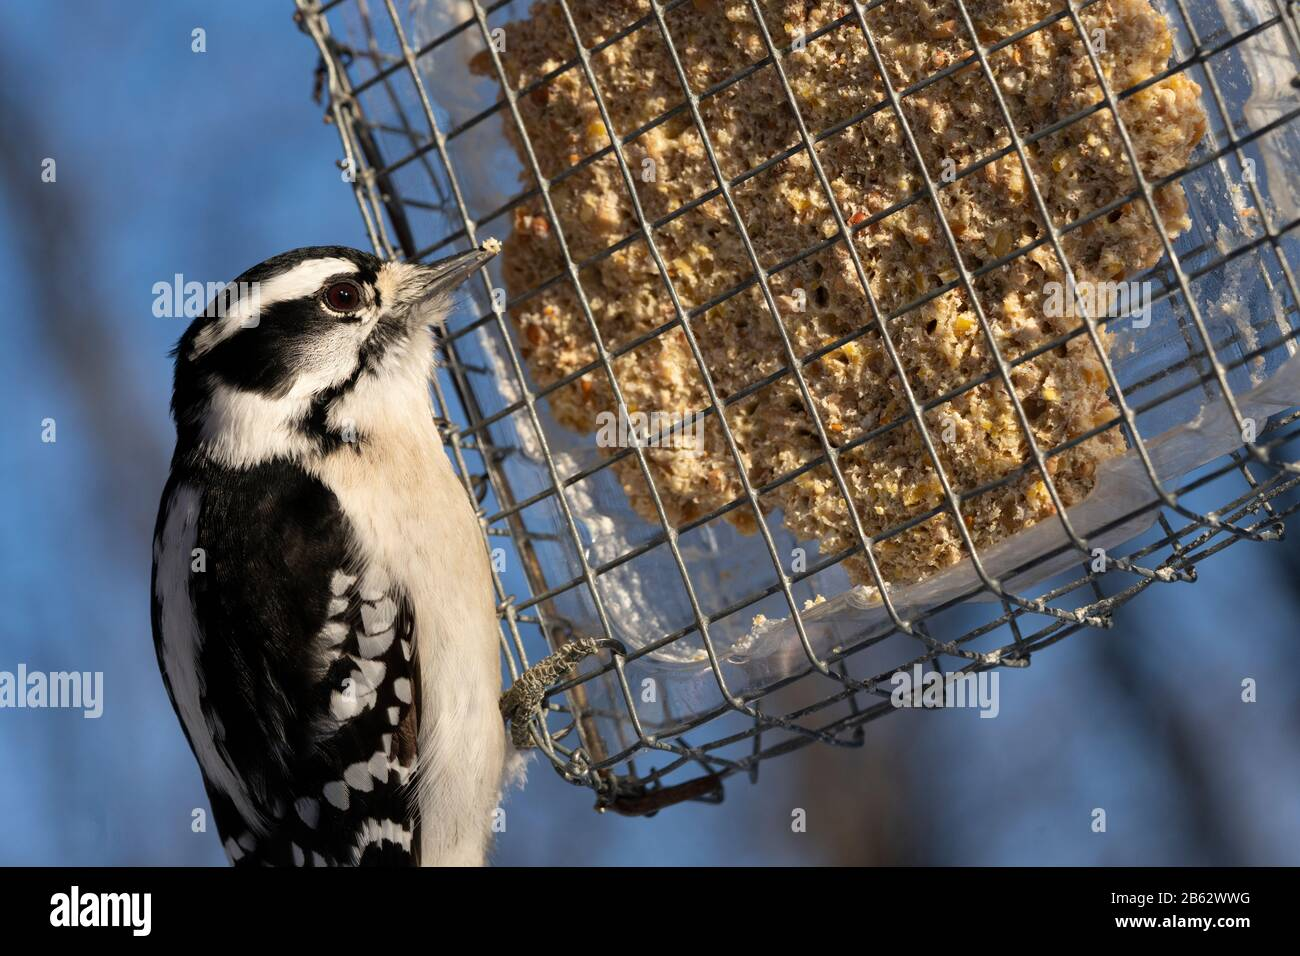 Woodpecker eating at bird feeder during winter Stock Photo